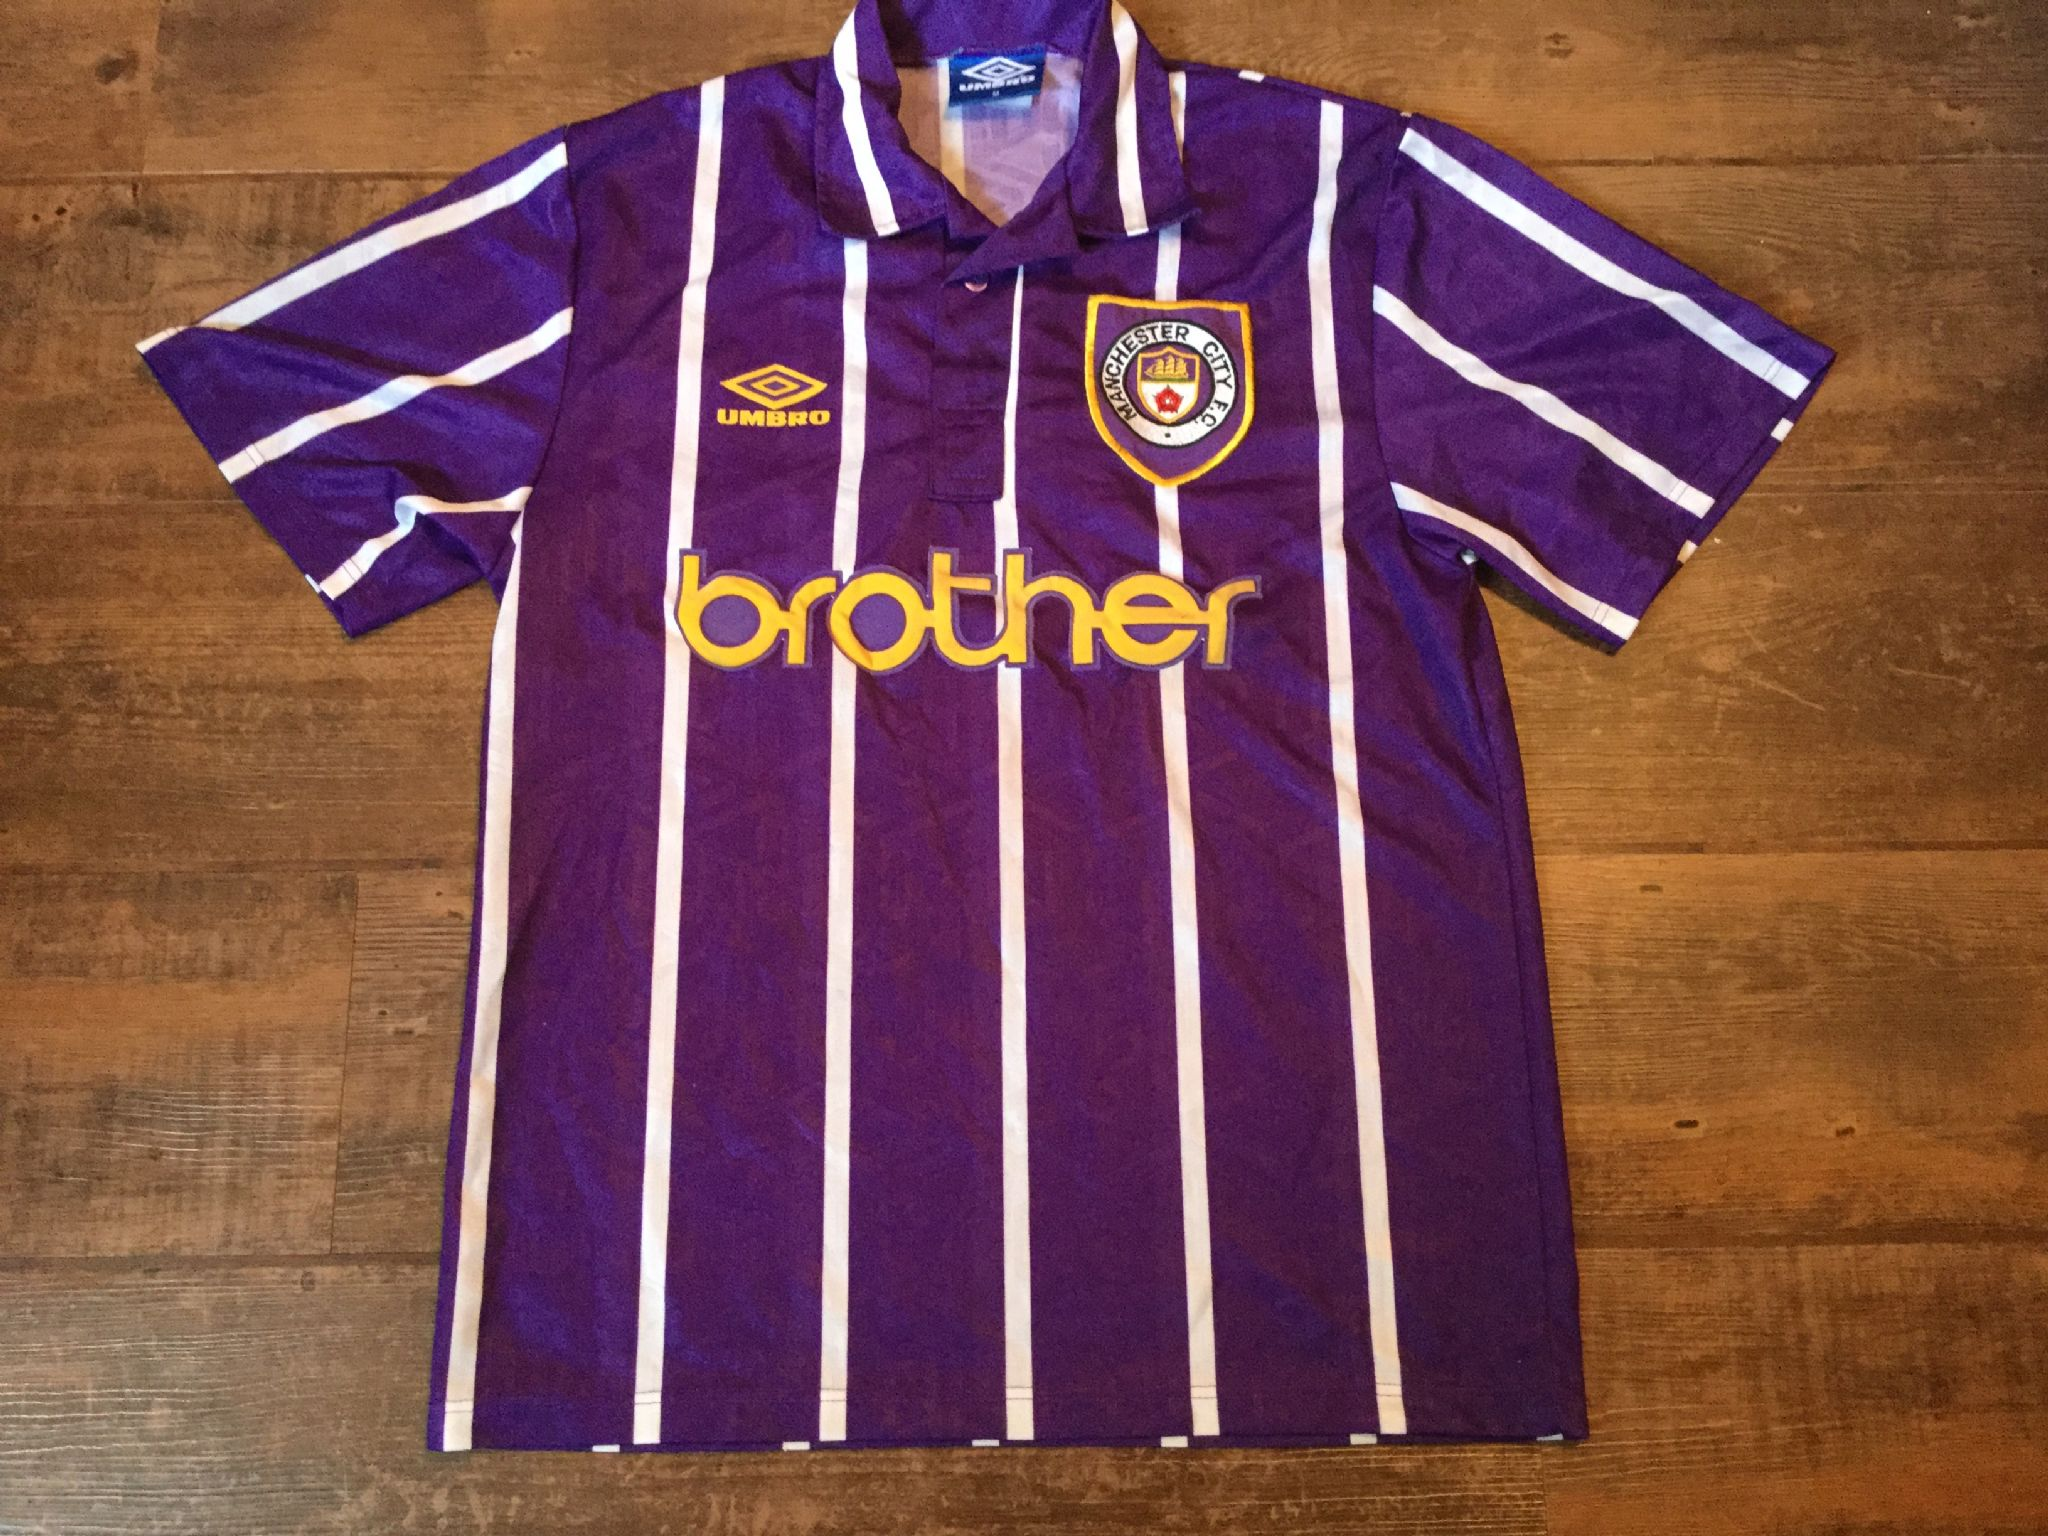 huge discount 9f636 a02ed Global Classic Football Shirts | 1992 1994 Manchester City ...